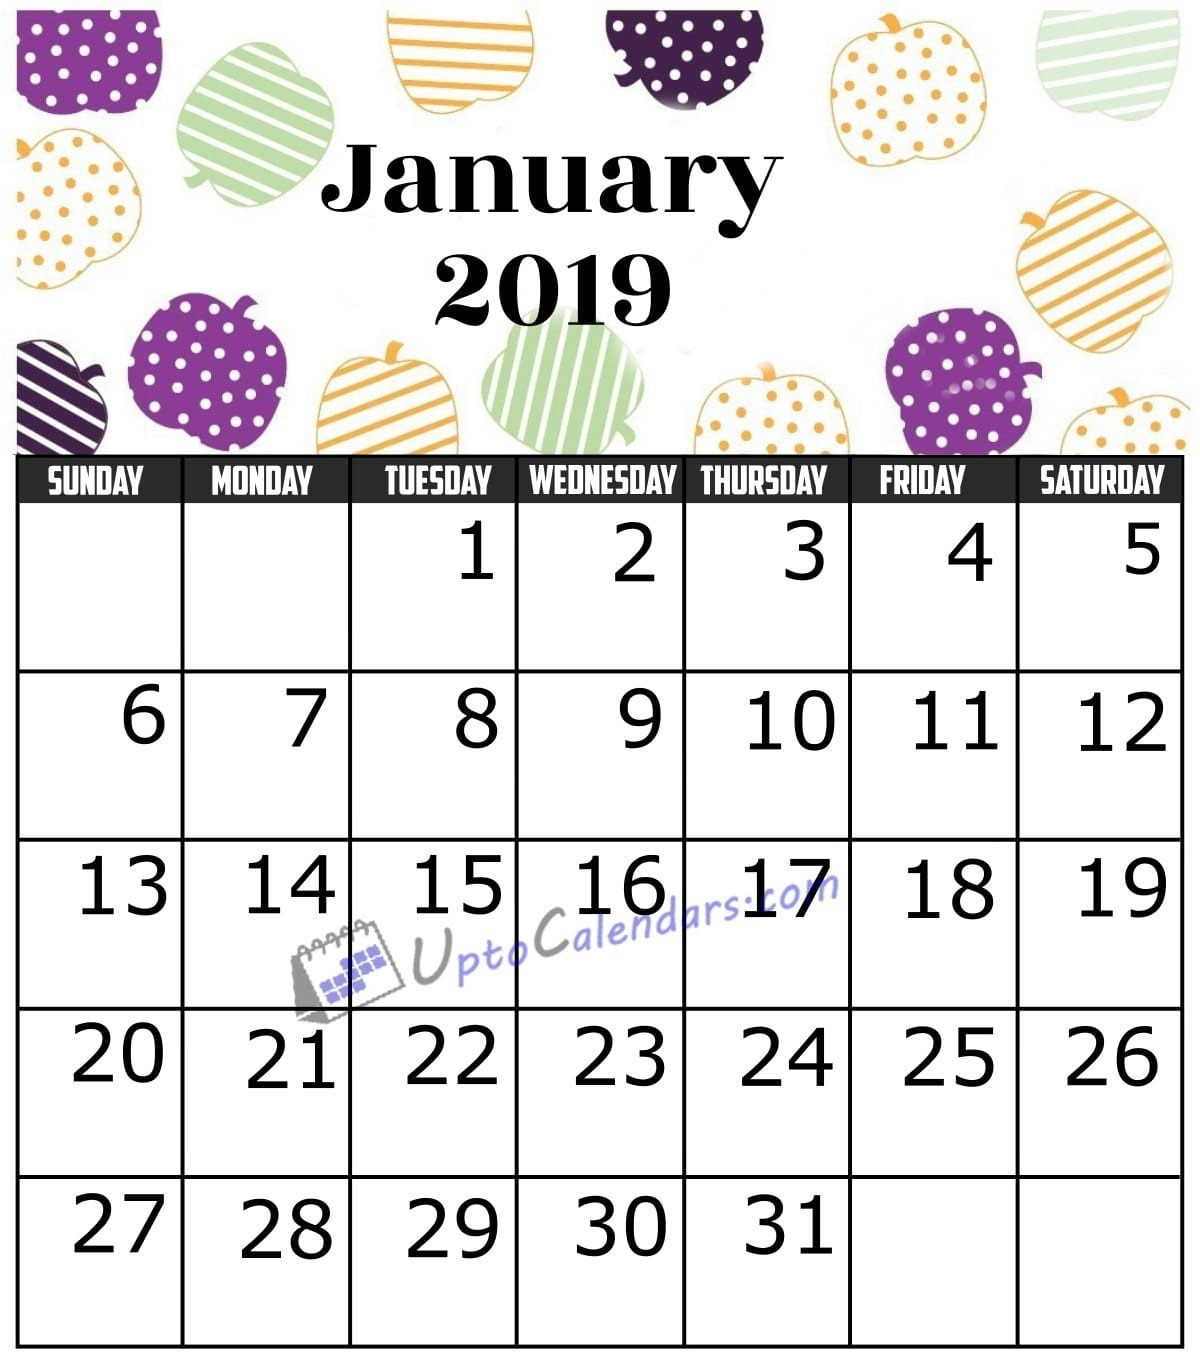 January 2019 Calendar Printable Template With Holidays Pdf Word January 8 2019 Calendar